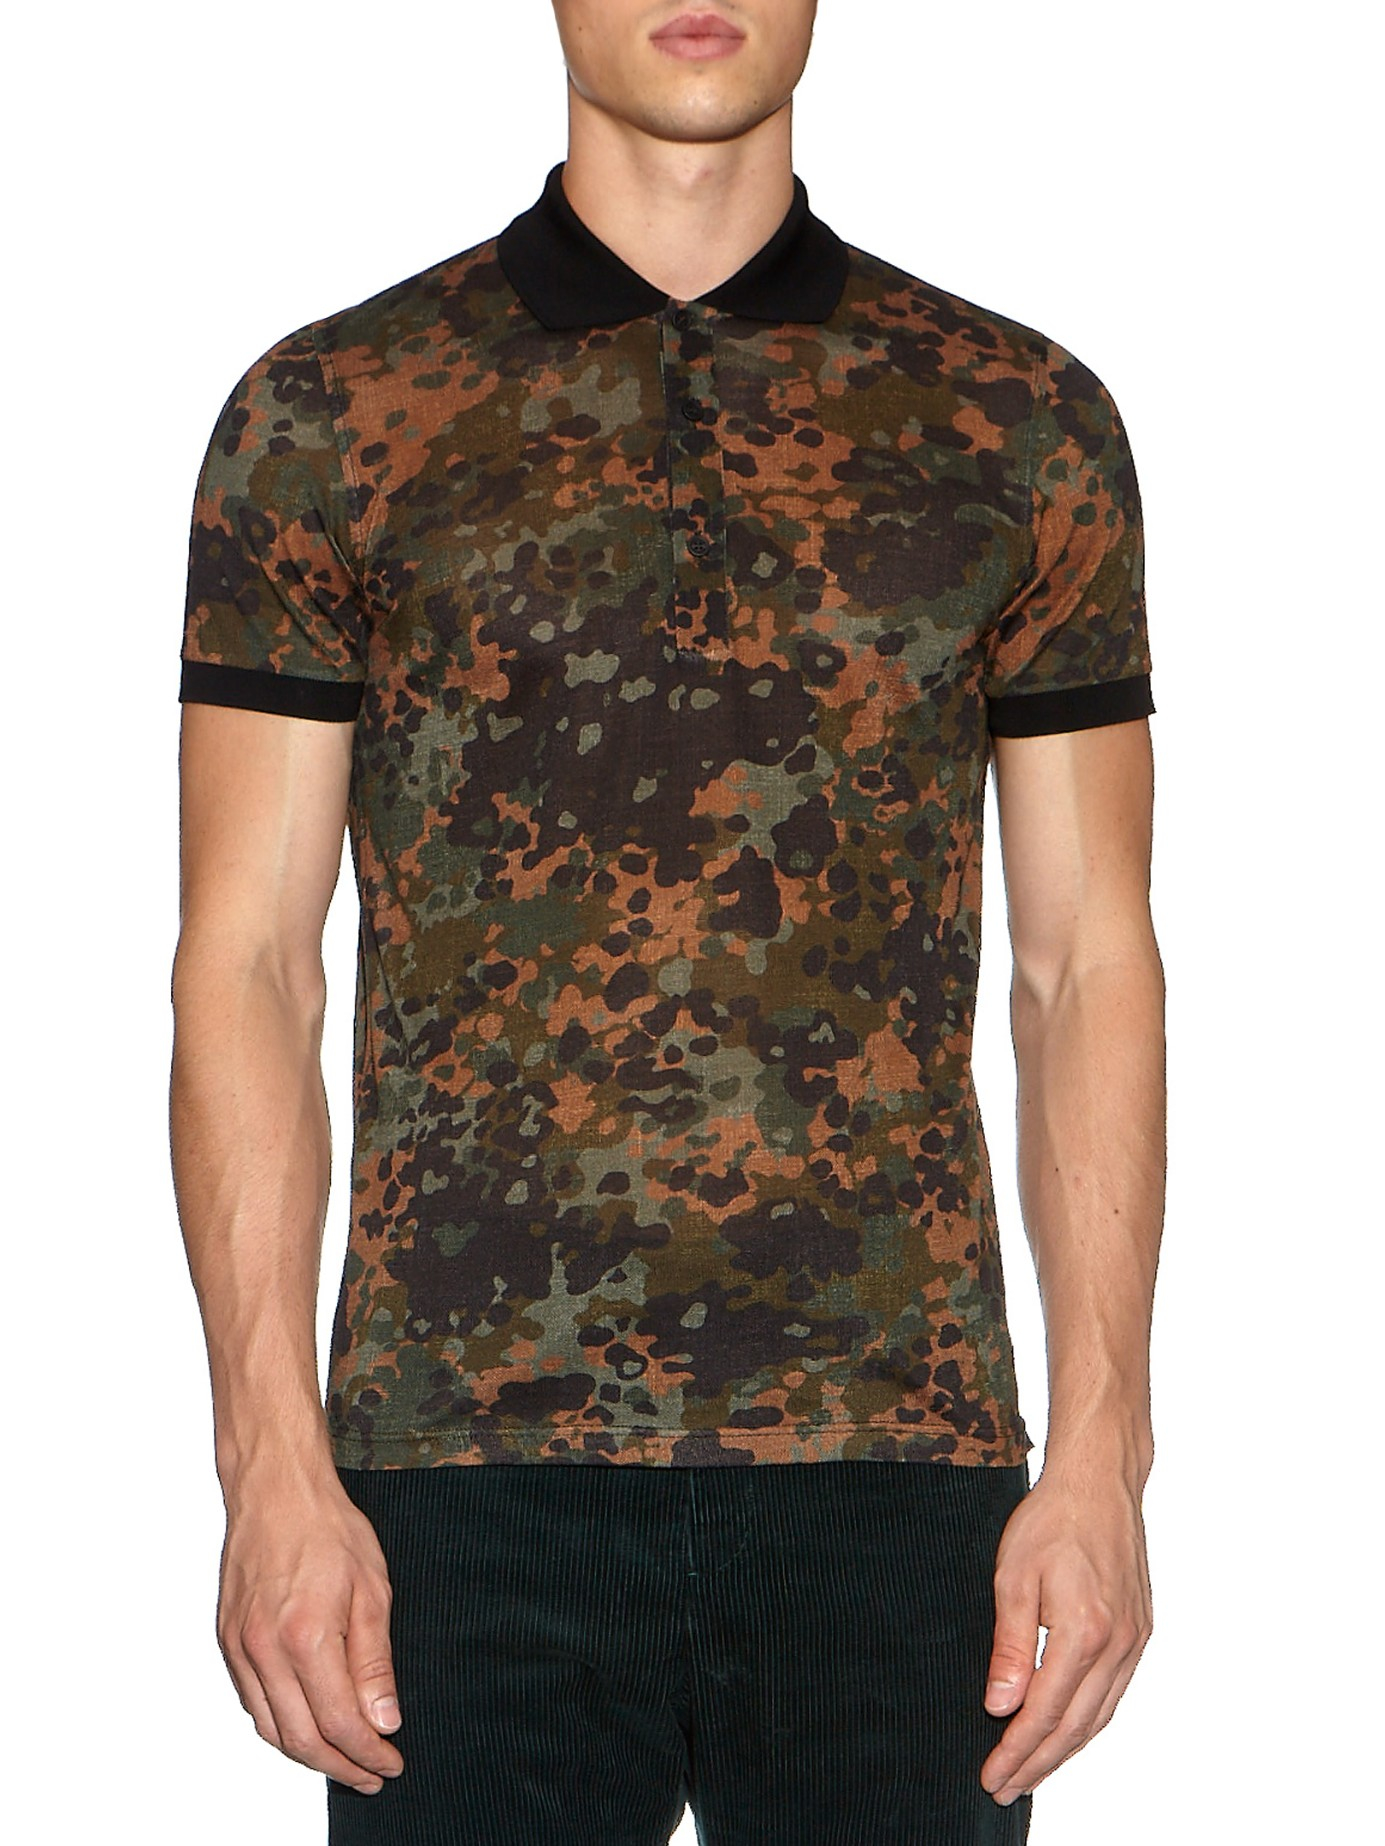 Burberry prorsum camouflage print polo shirt in brown for for Camouflage t shirt design